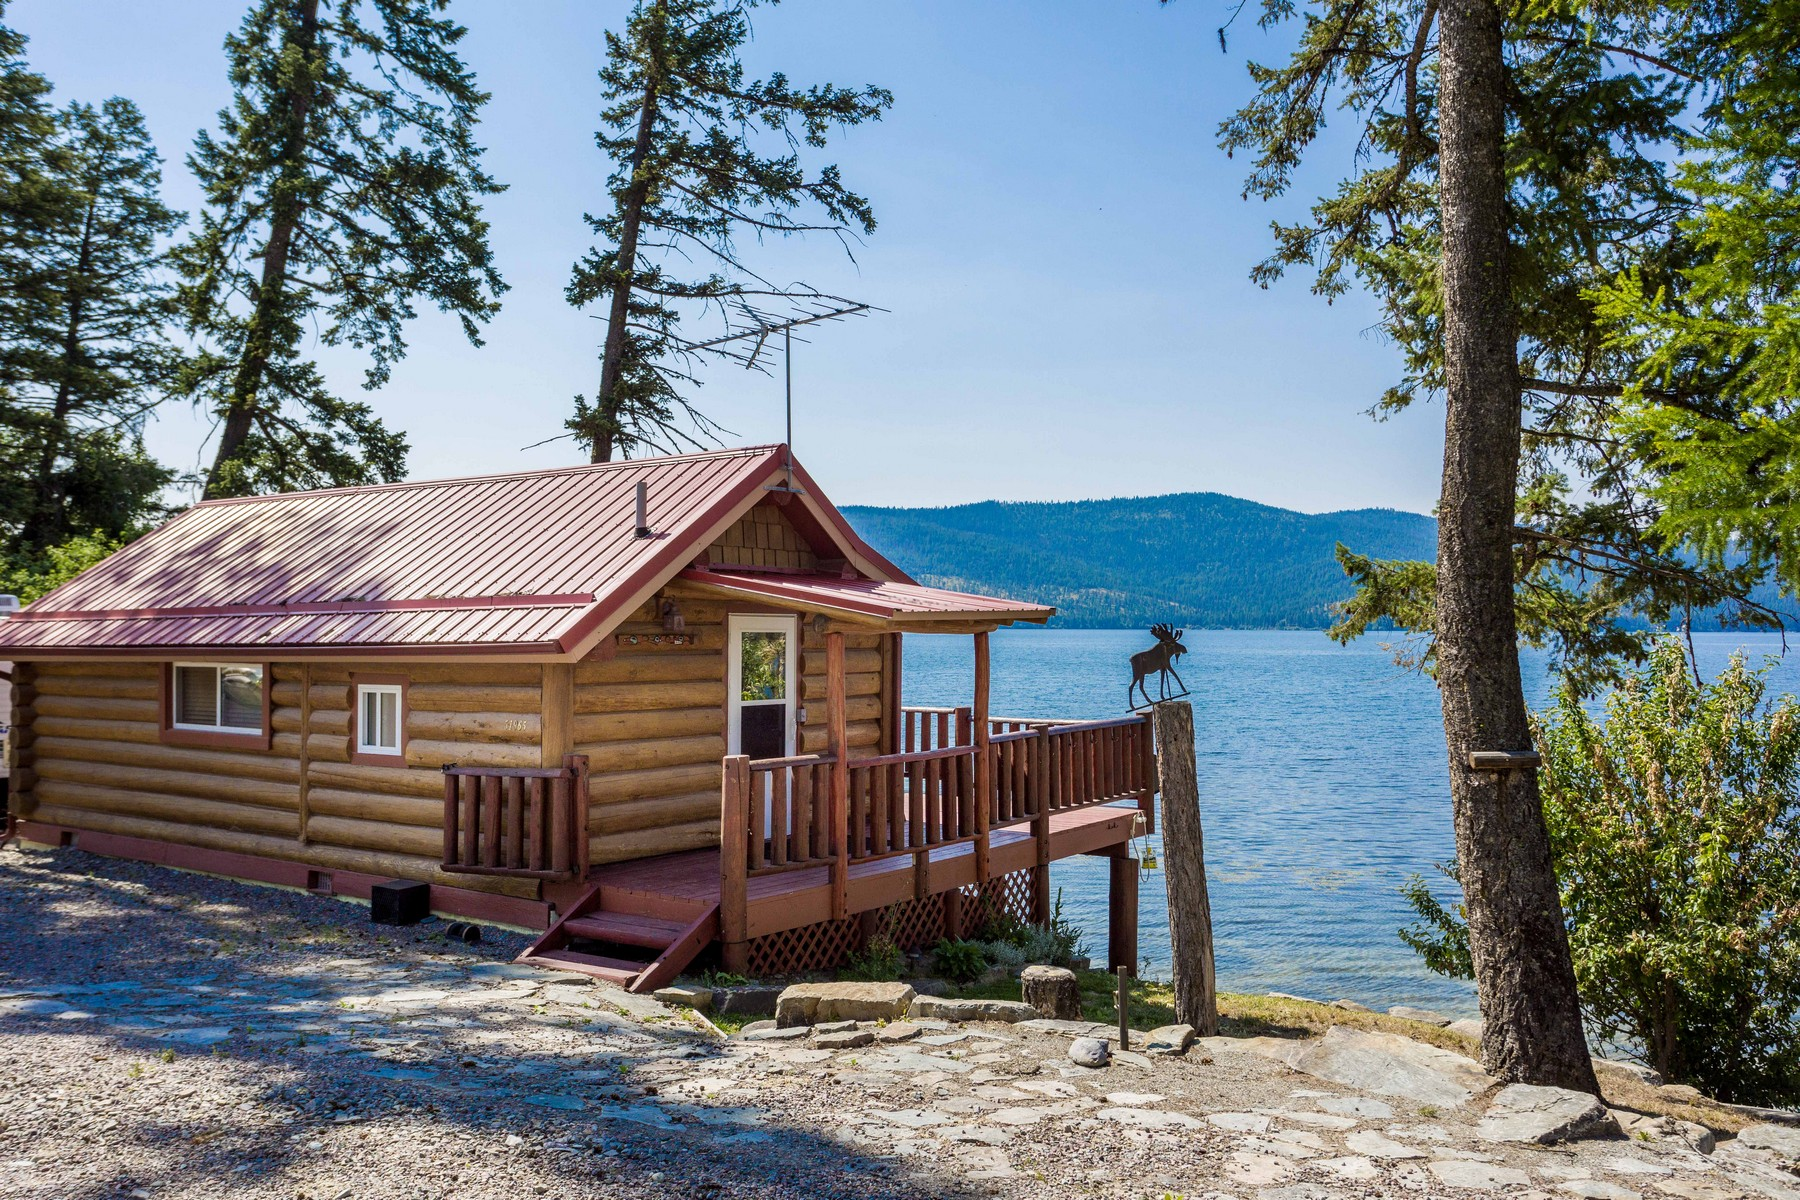 Single Family Homes for Sale at 51965 Lake Mary Ronan Road Proctor, Montana 59929 United States